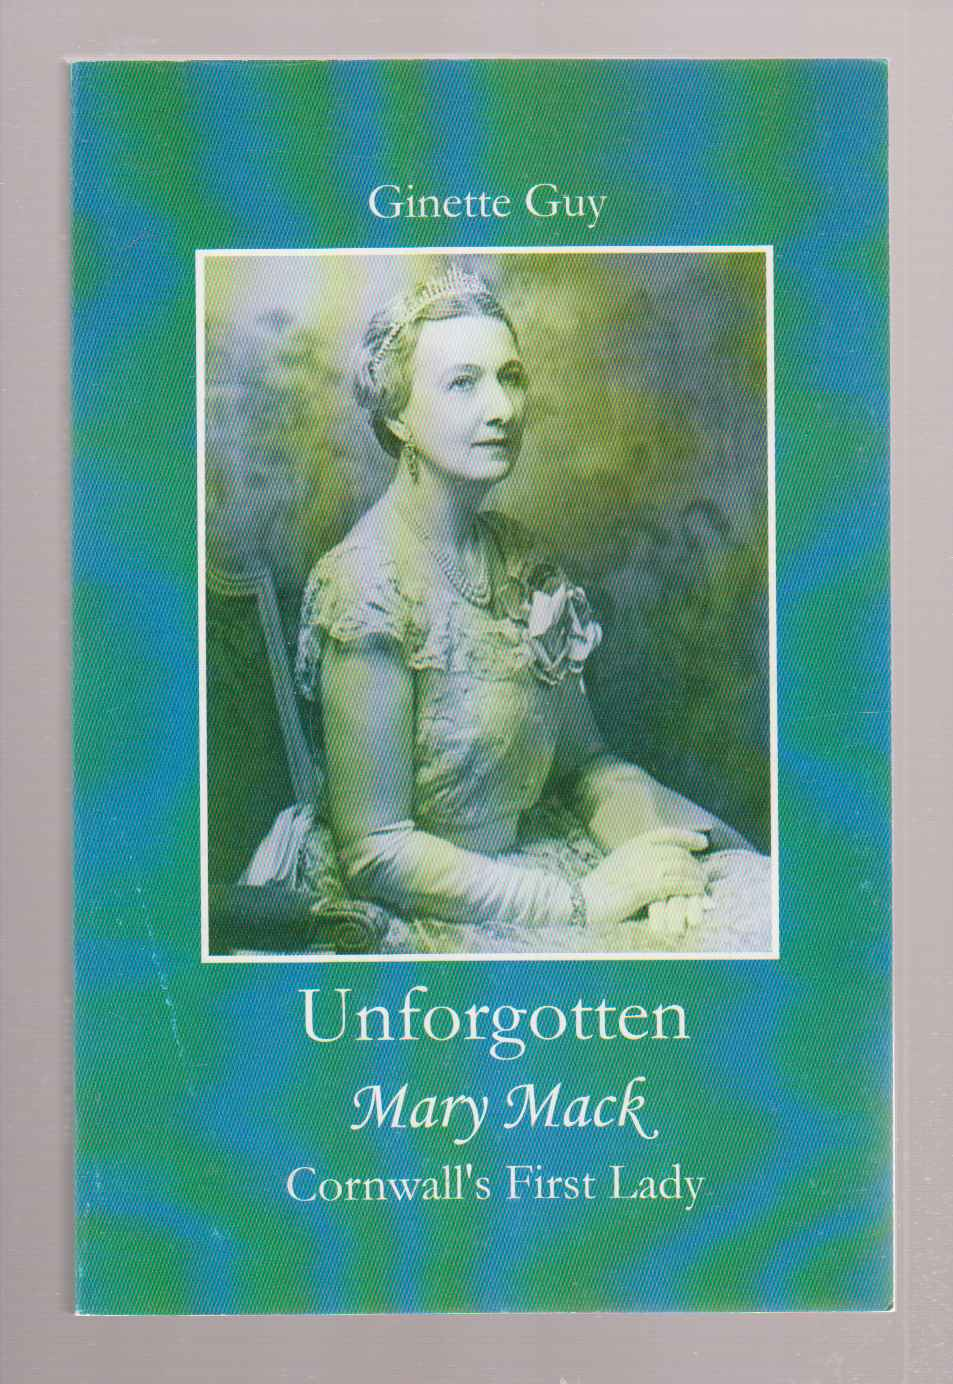 Image for Unforgotten Mary Mack Cornwall's First Lady